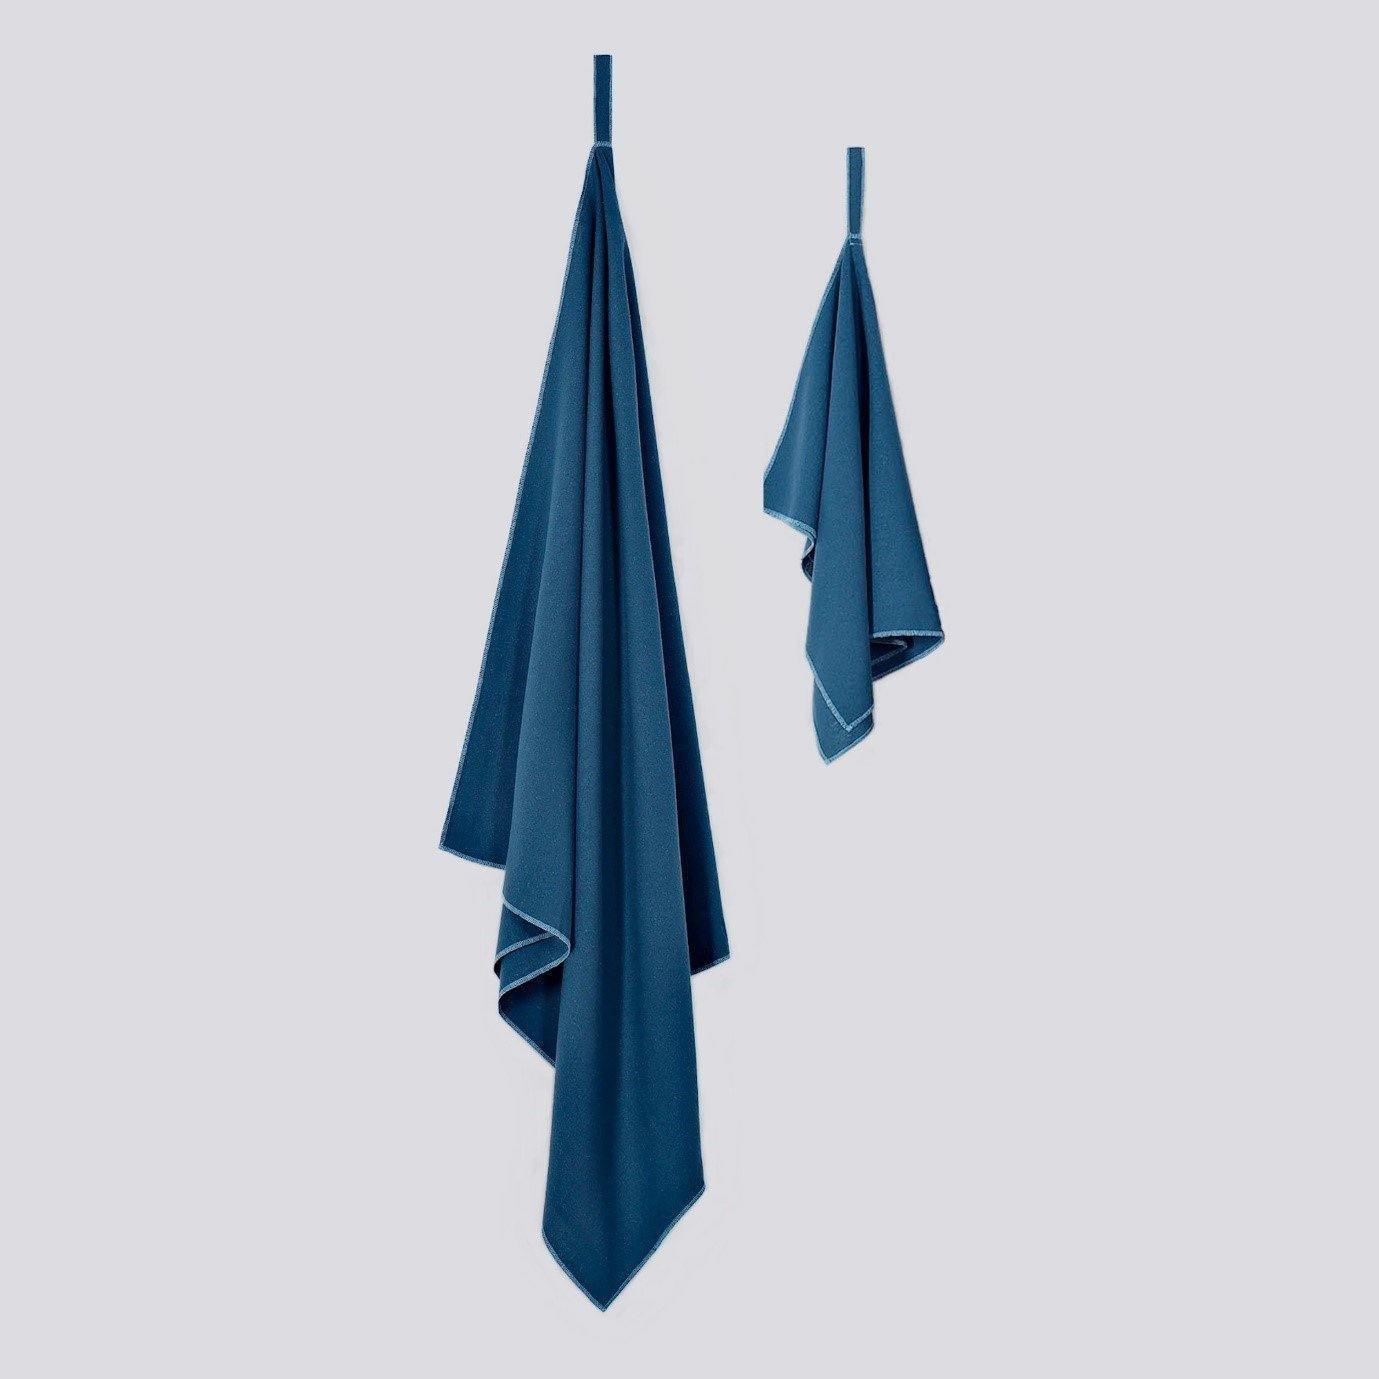 Raw Silk Travel Towel, Standard Set, Blue - LockrSpace